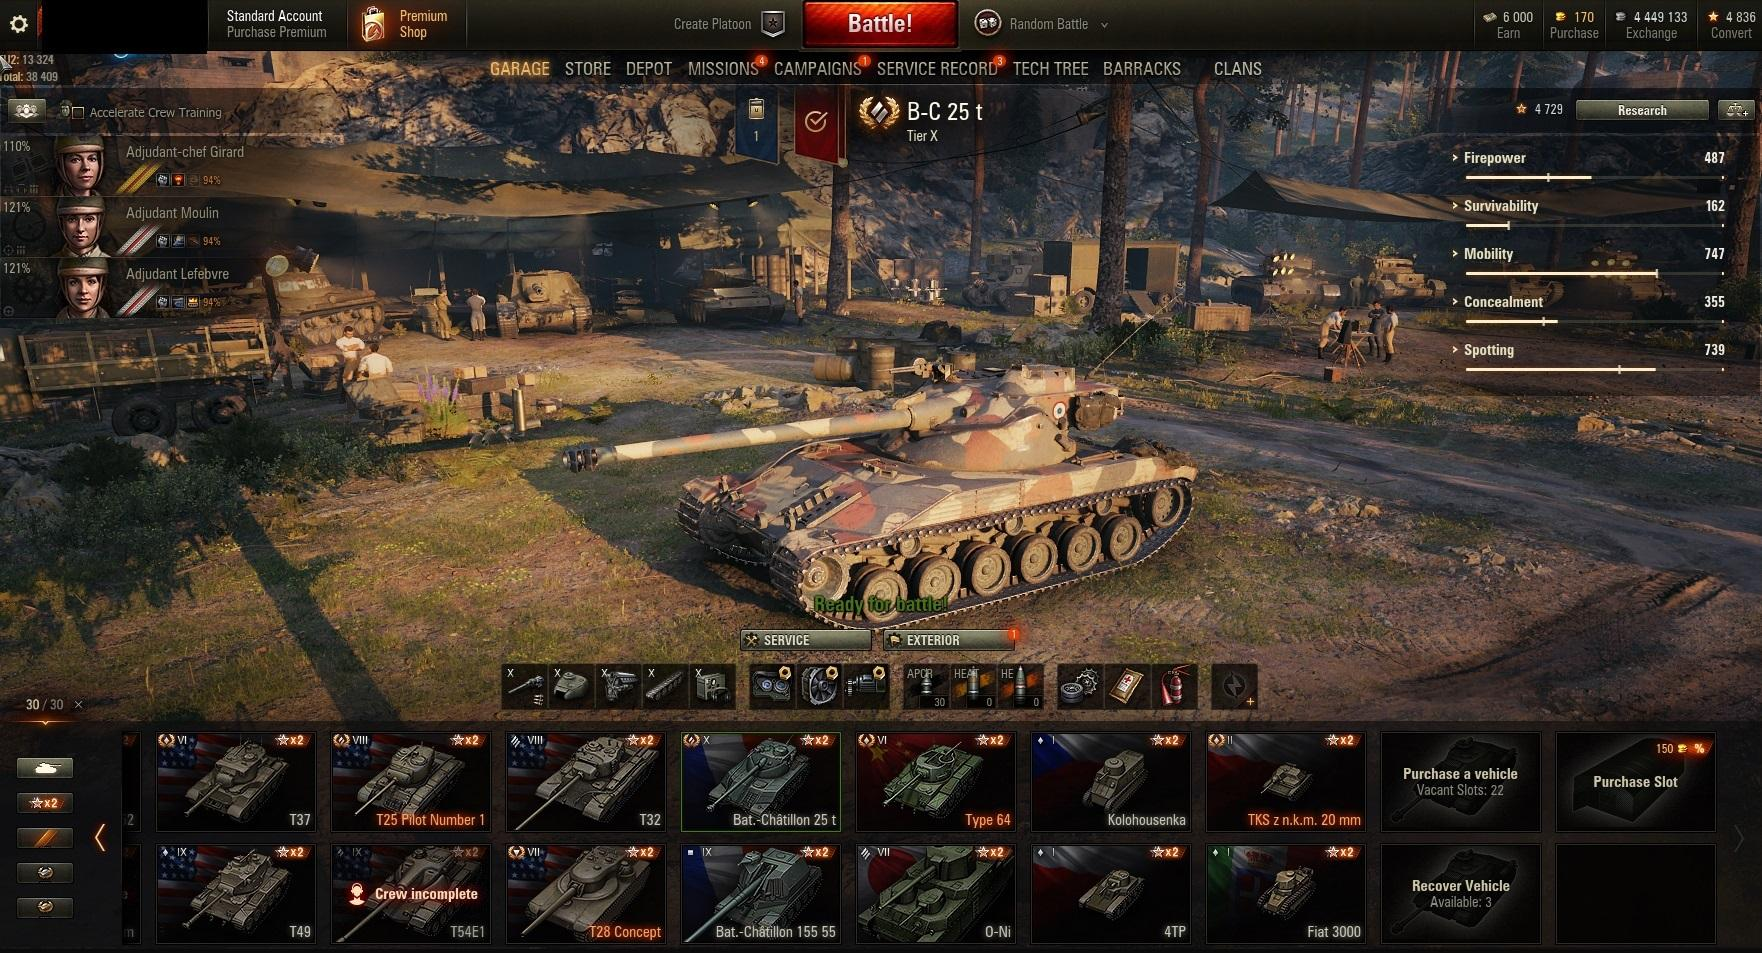 Personal Rating:3775! Victories:47%! 27 ALL TANKS: Bat.-Chatillon 25 t! T26E4 SuperPersing, T-50-2, Churchill III !